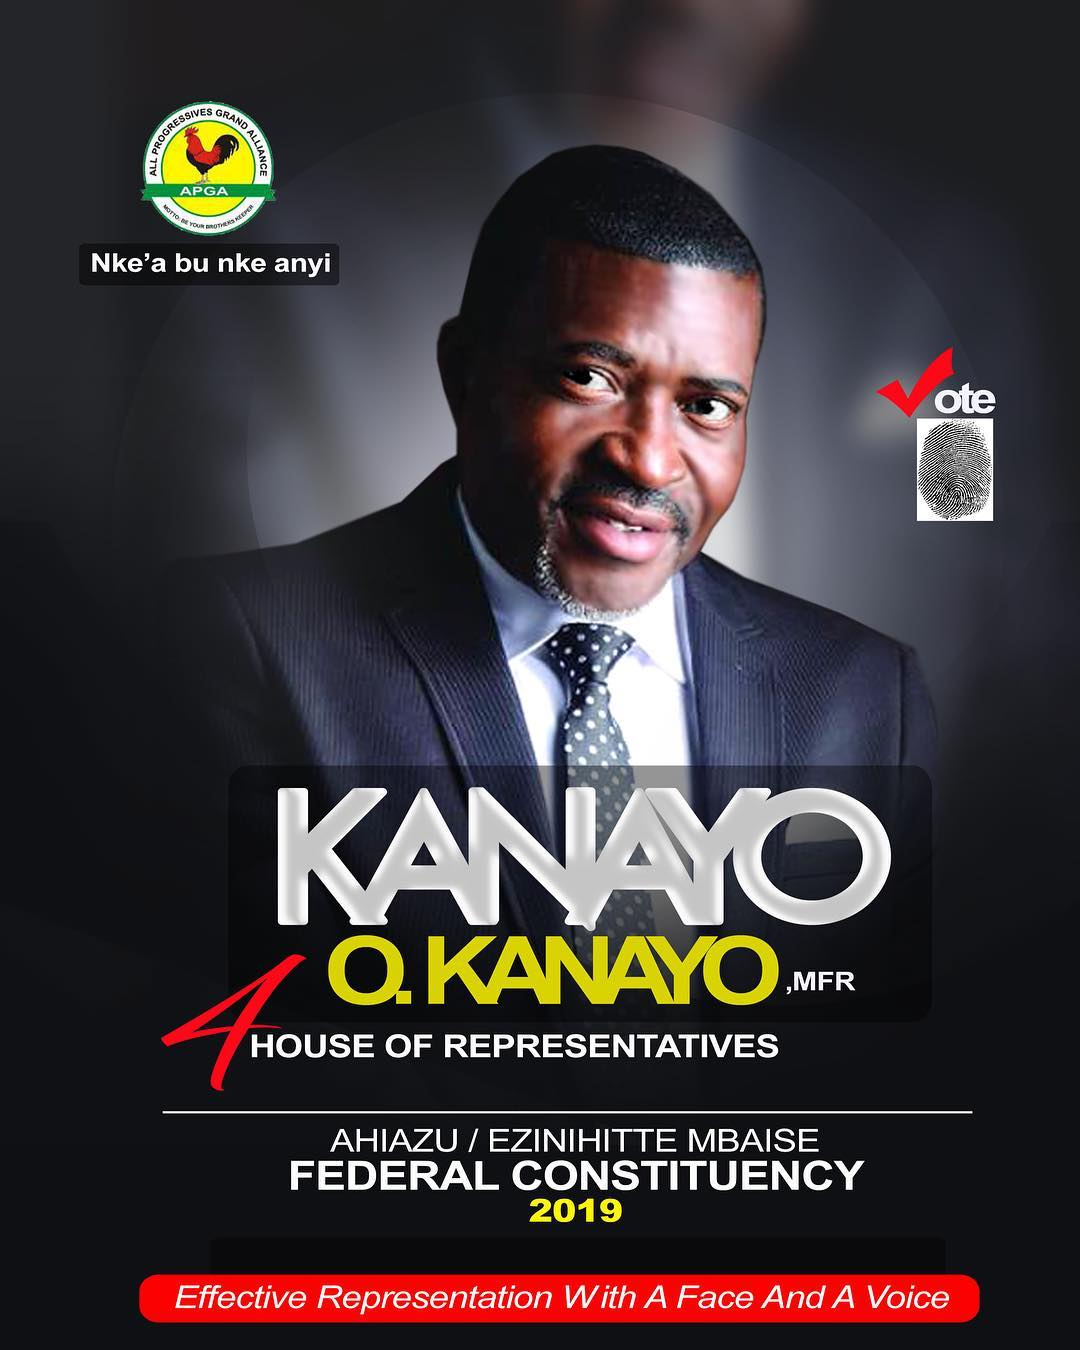 Veteran Actor, Kanayo O. Kanayo, Releases His Official Campaign Poster